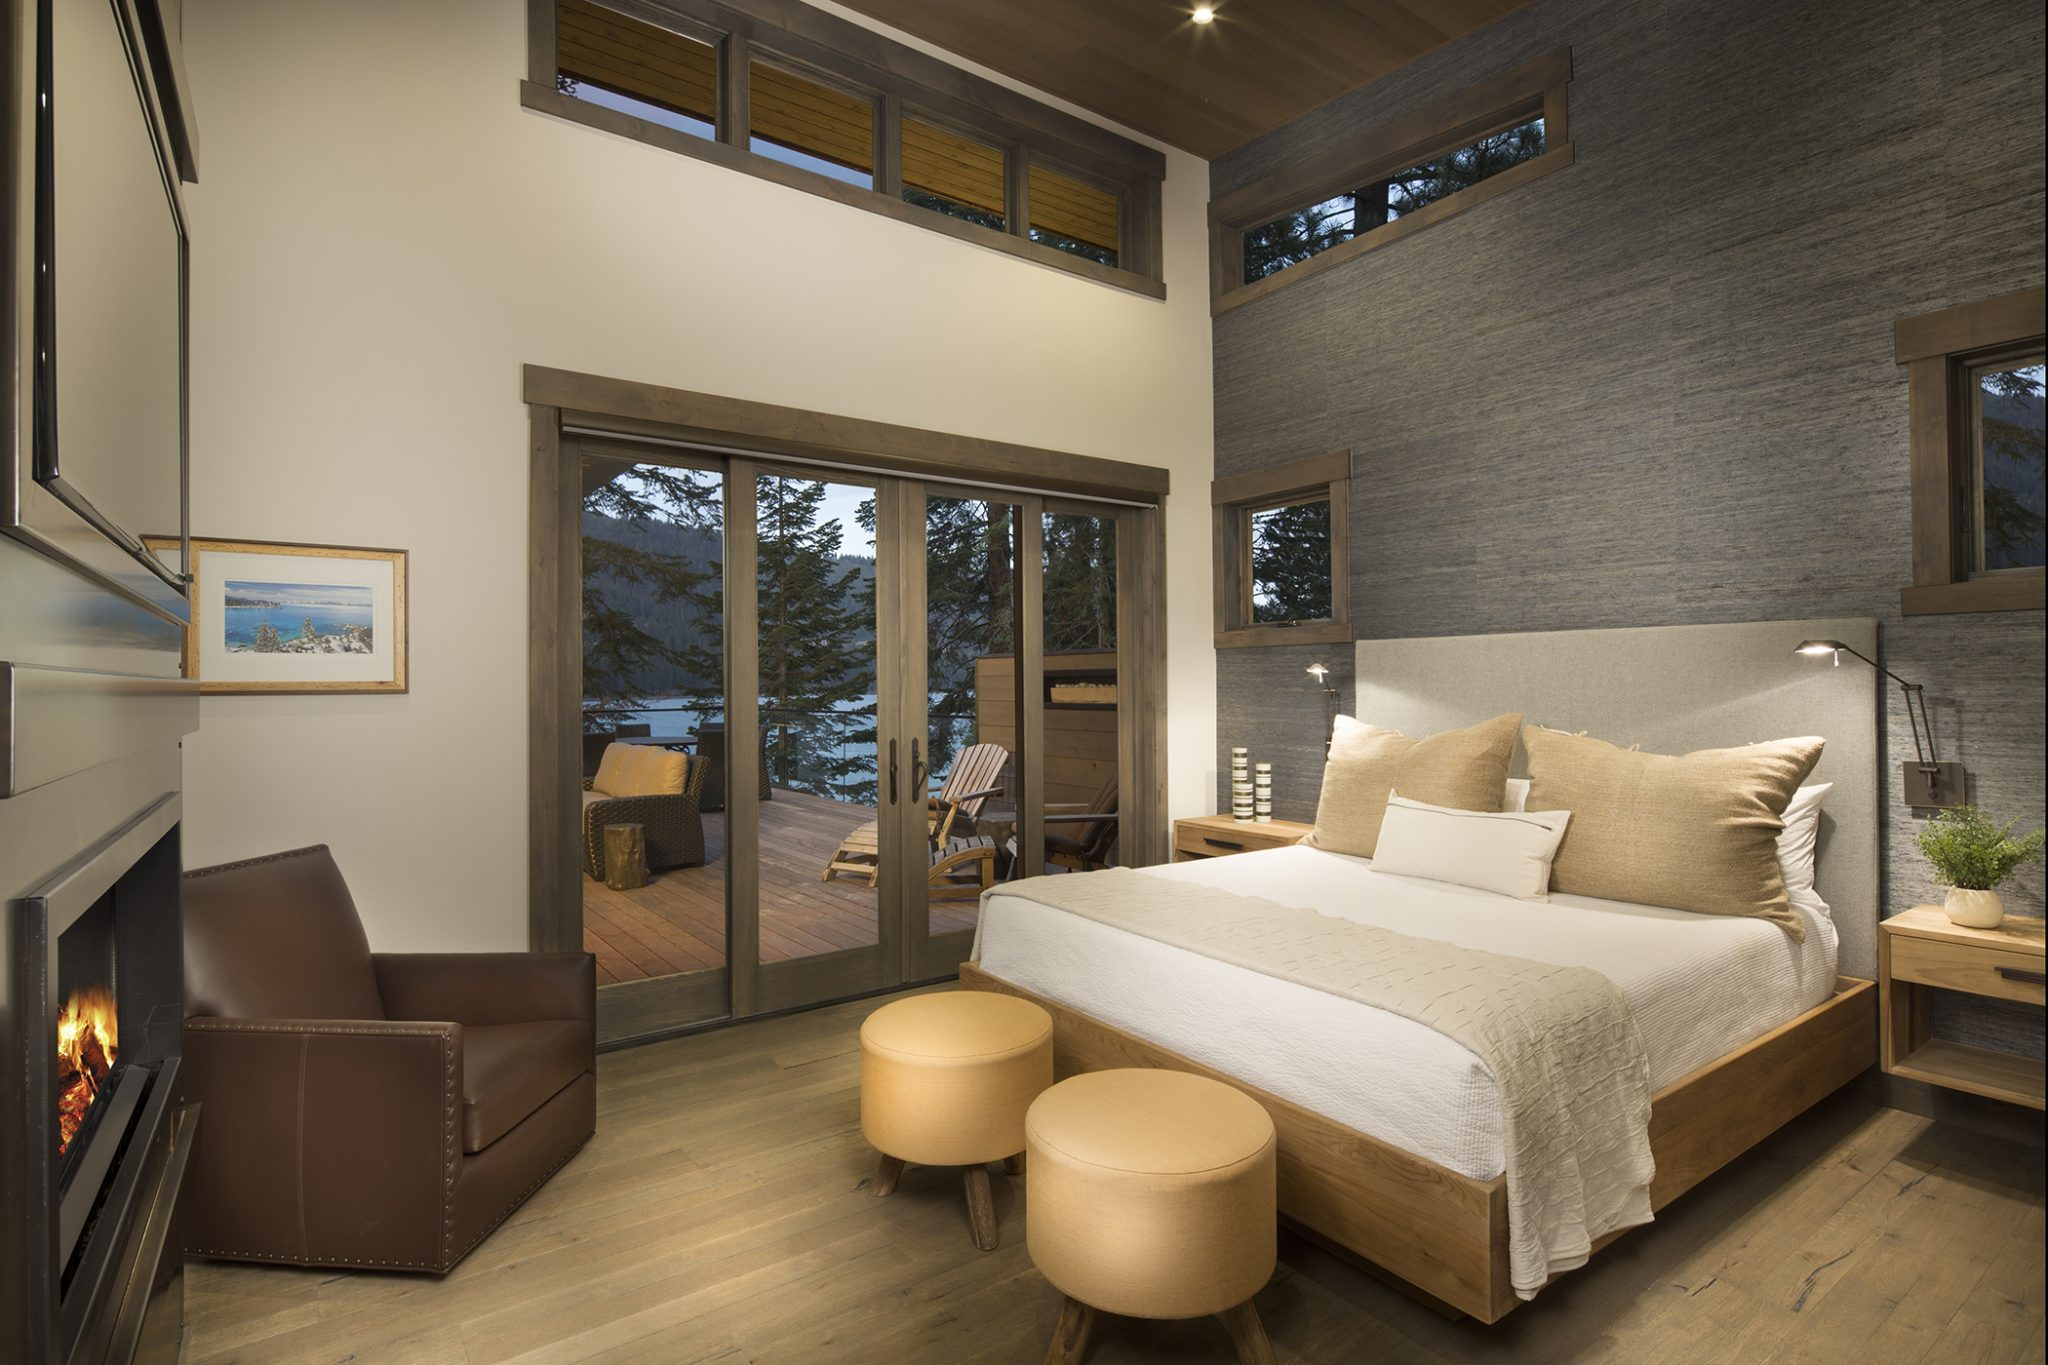 Contemporary lakehouse - Donner Lake, Truckee, CA. By Aspen Leaf Interiors, Inc.